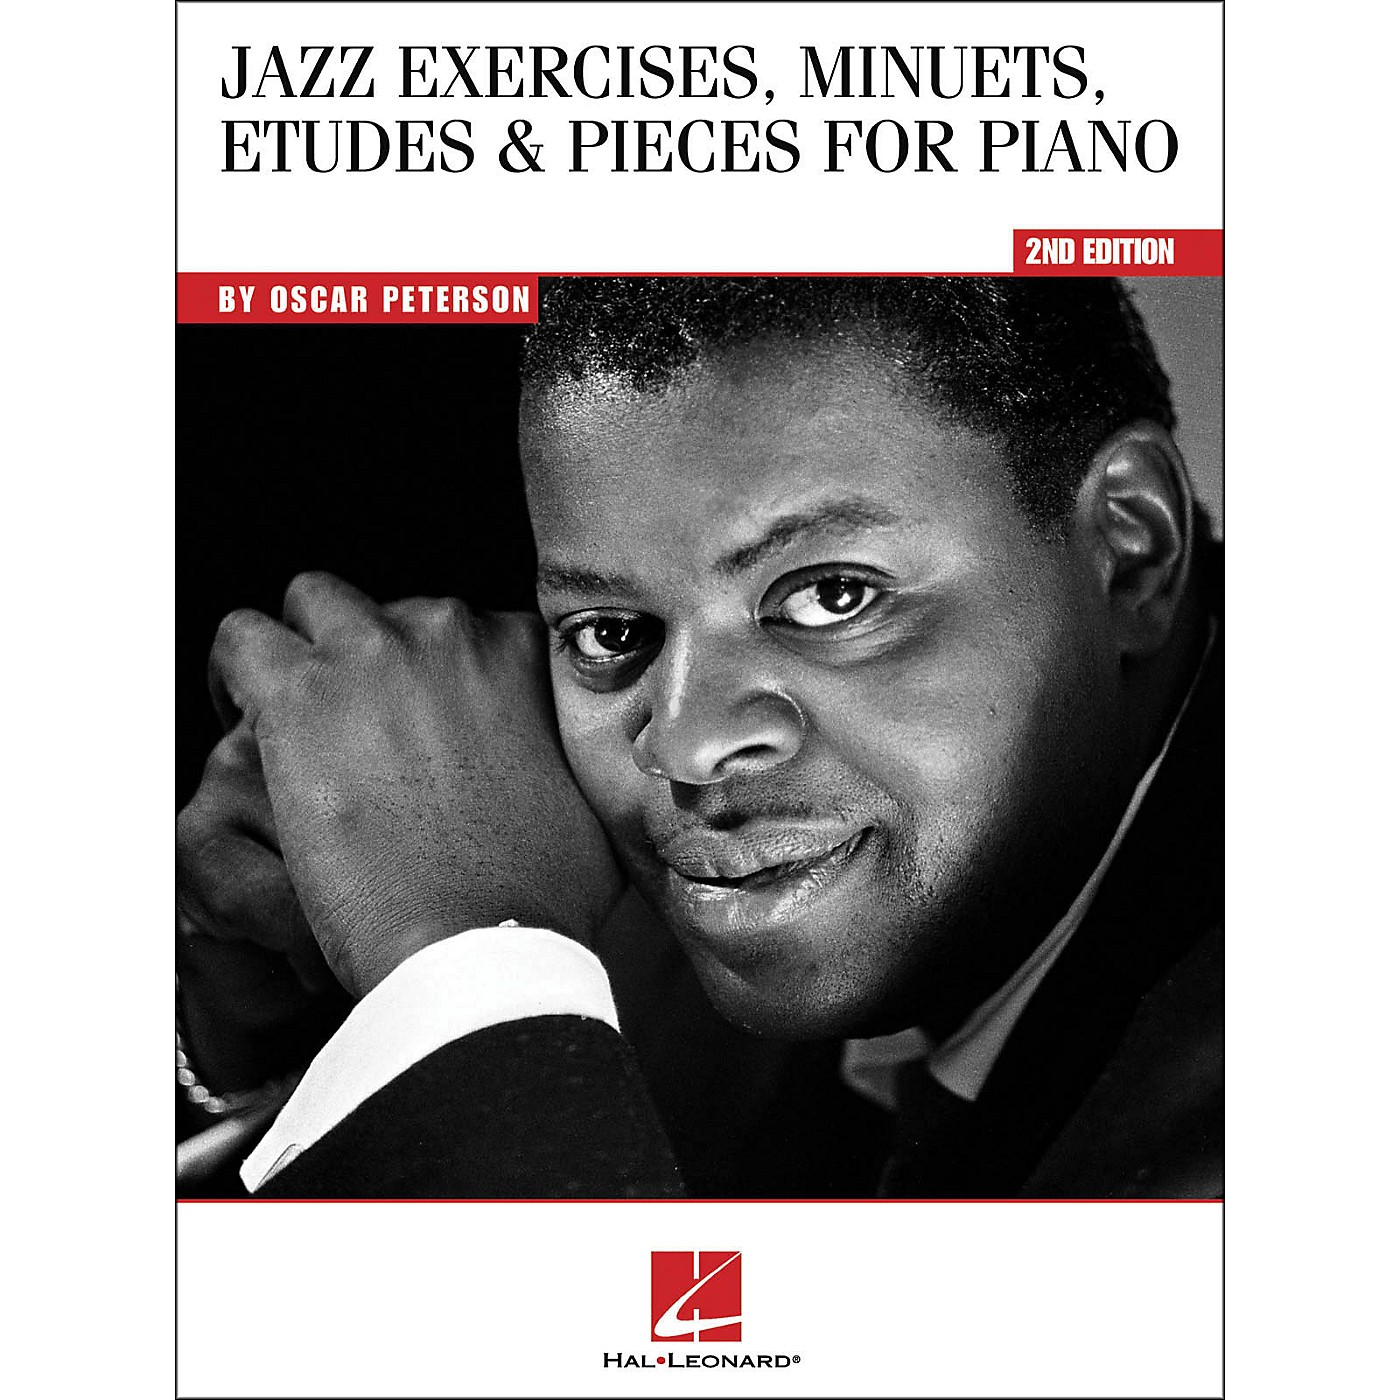 Hal Leonard Jazz Exercises, Minuets, Etudes and Pieces for Piano 2Nd Edition thumbnail